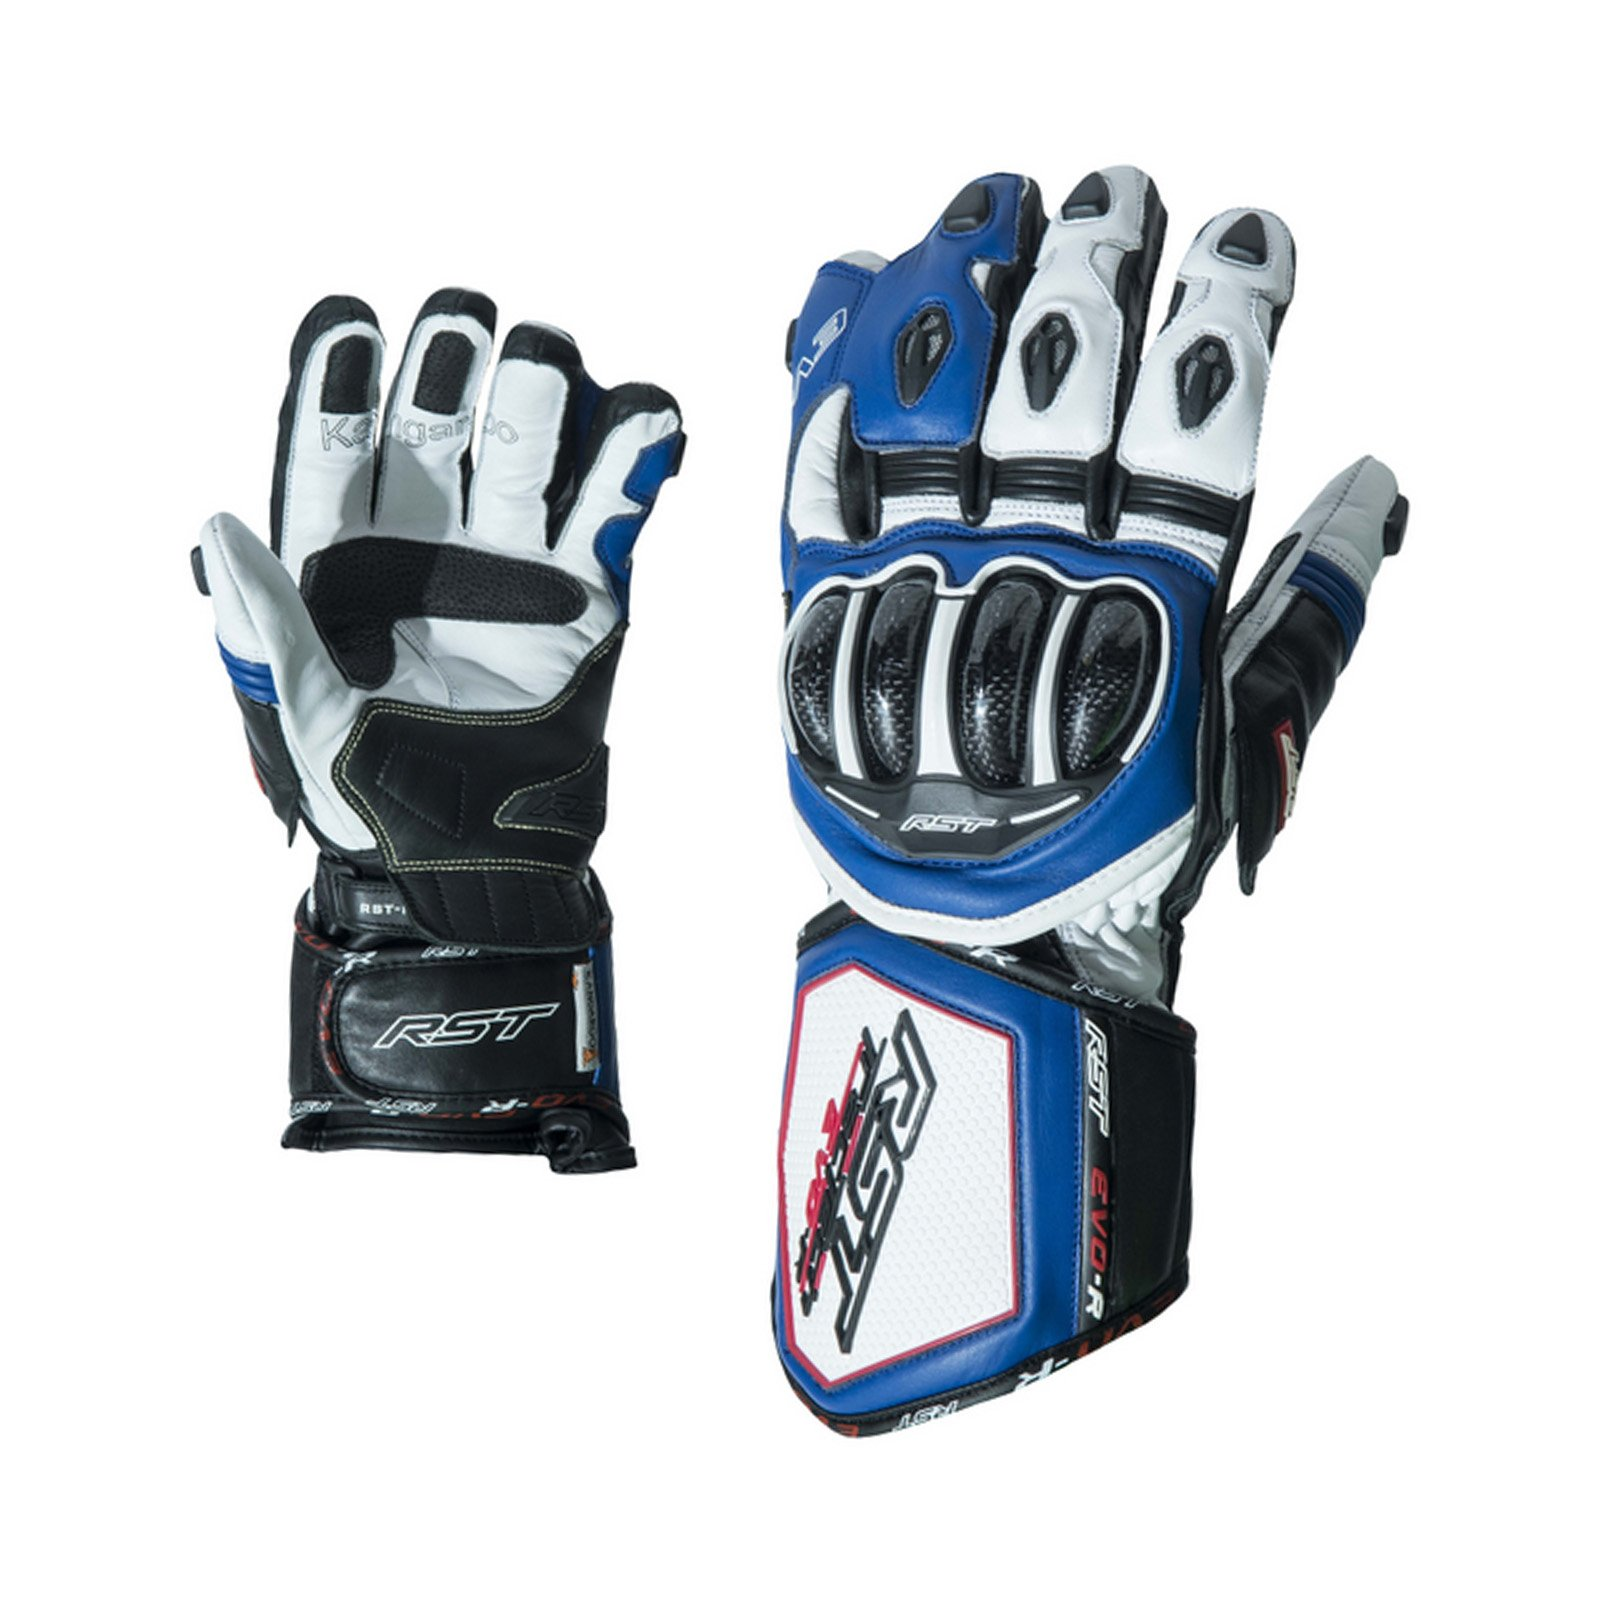 RST 2092 Tractech Evo R Race Sports Leather Aramid Motorcycle Gloves - Blue L